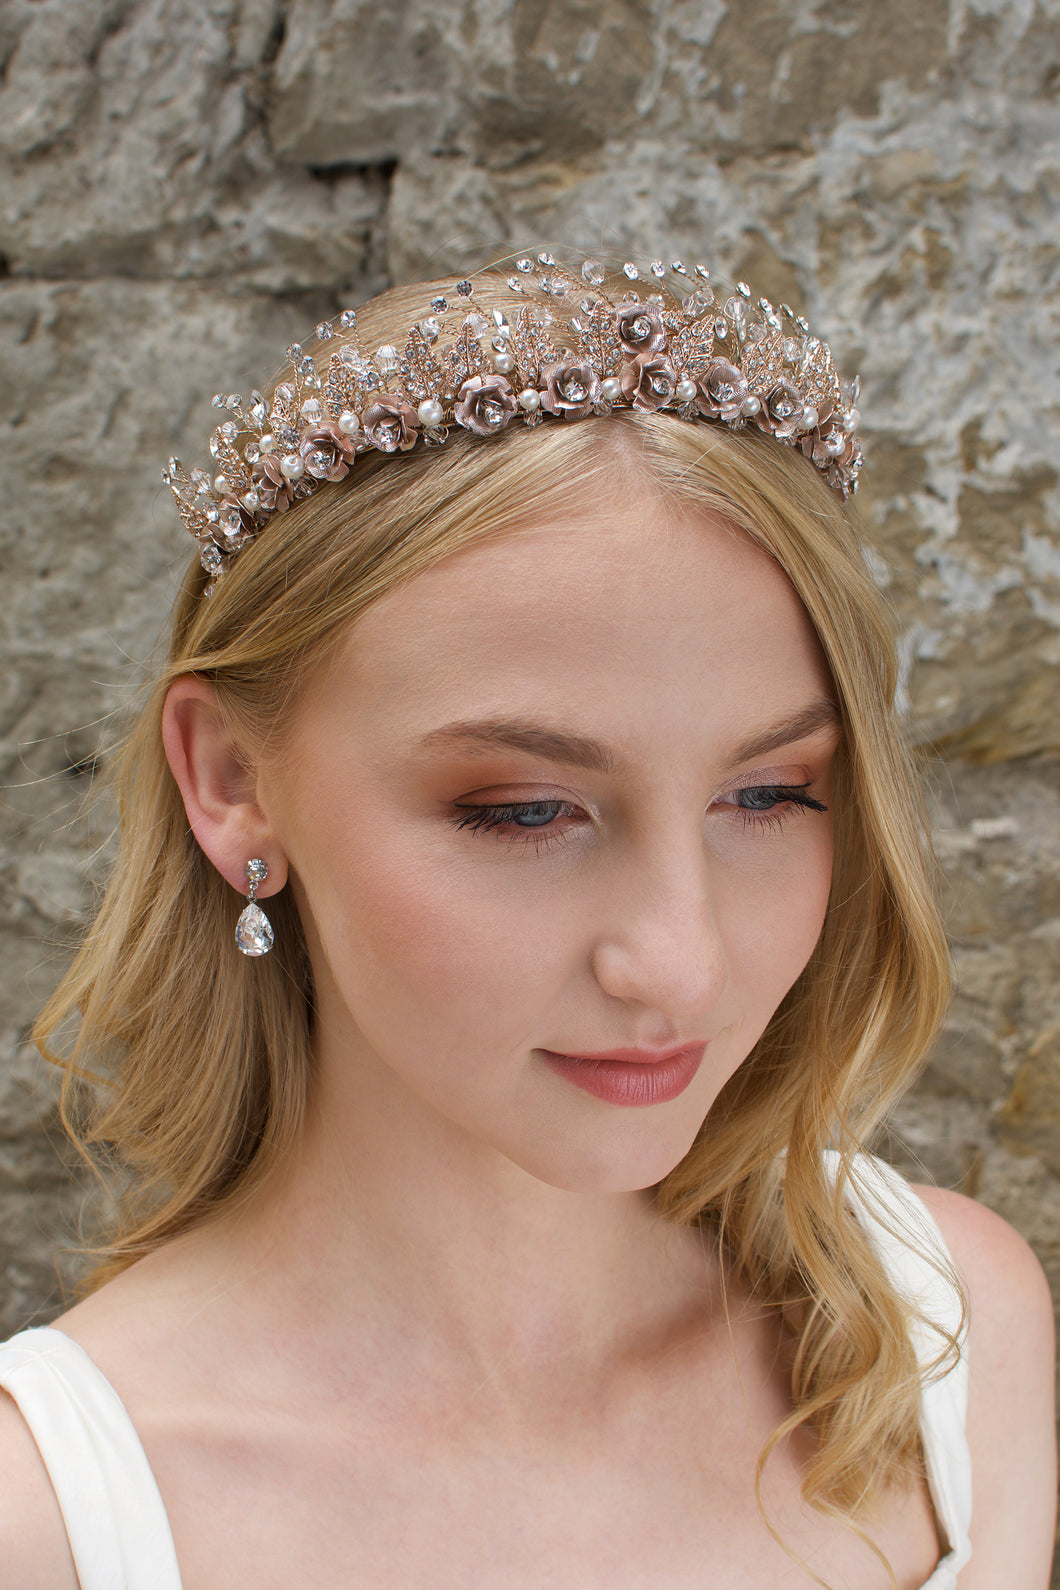 A Rose Gold Flowers and pearls wide tiara worn by a blonde bride with a stone wall background.